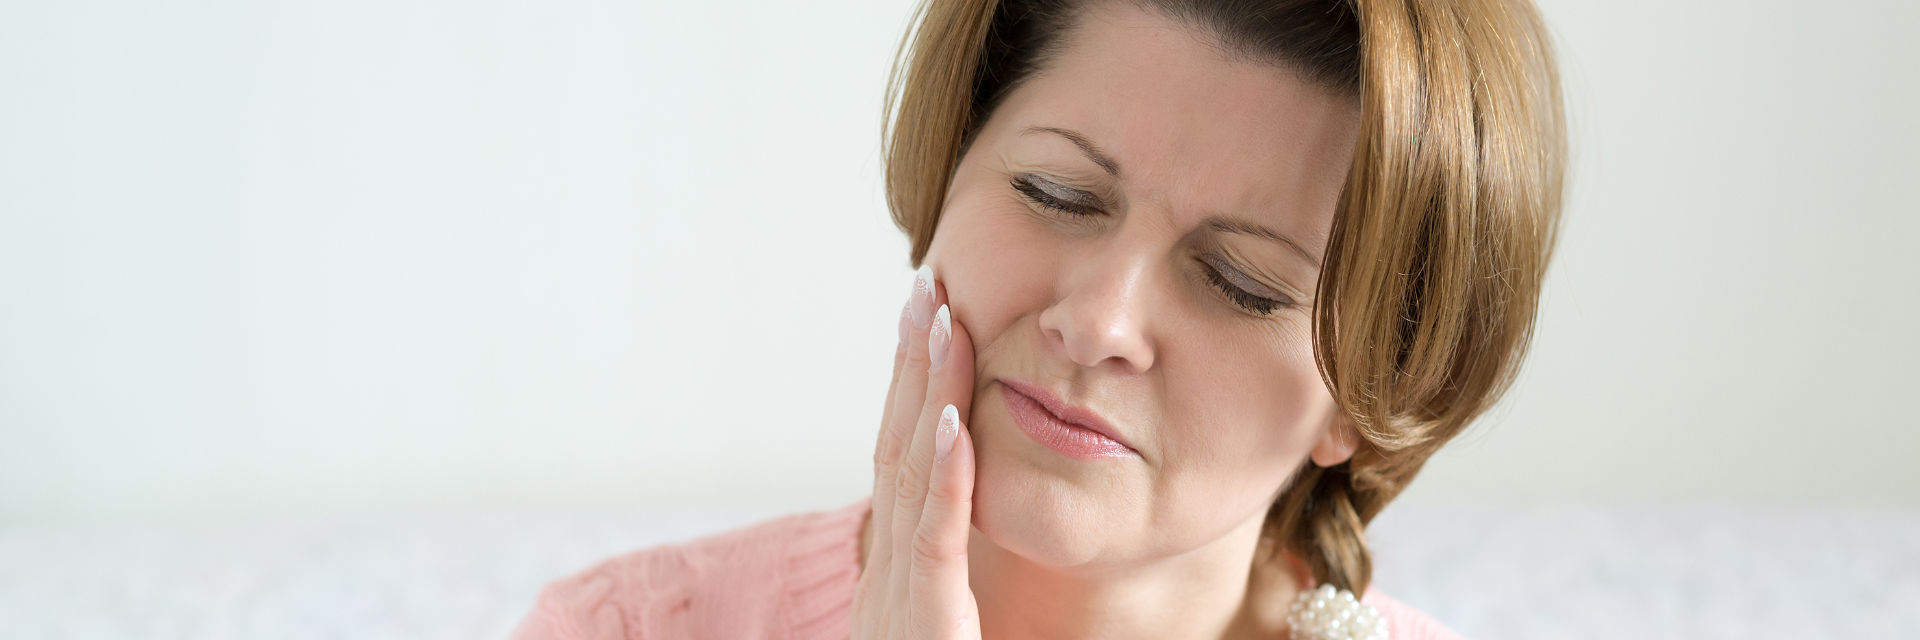 A woman with dental pain in need of emergency dental appointment.